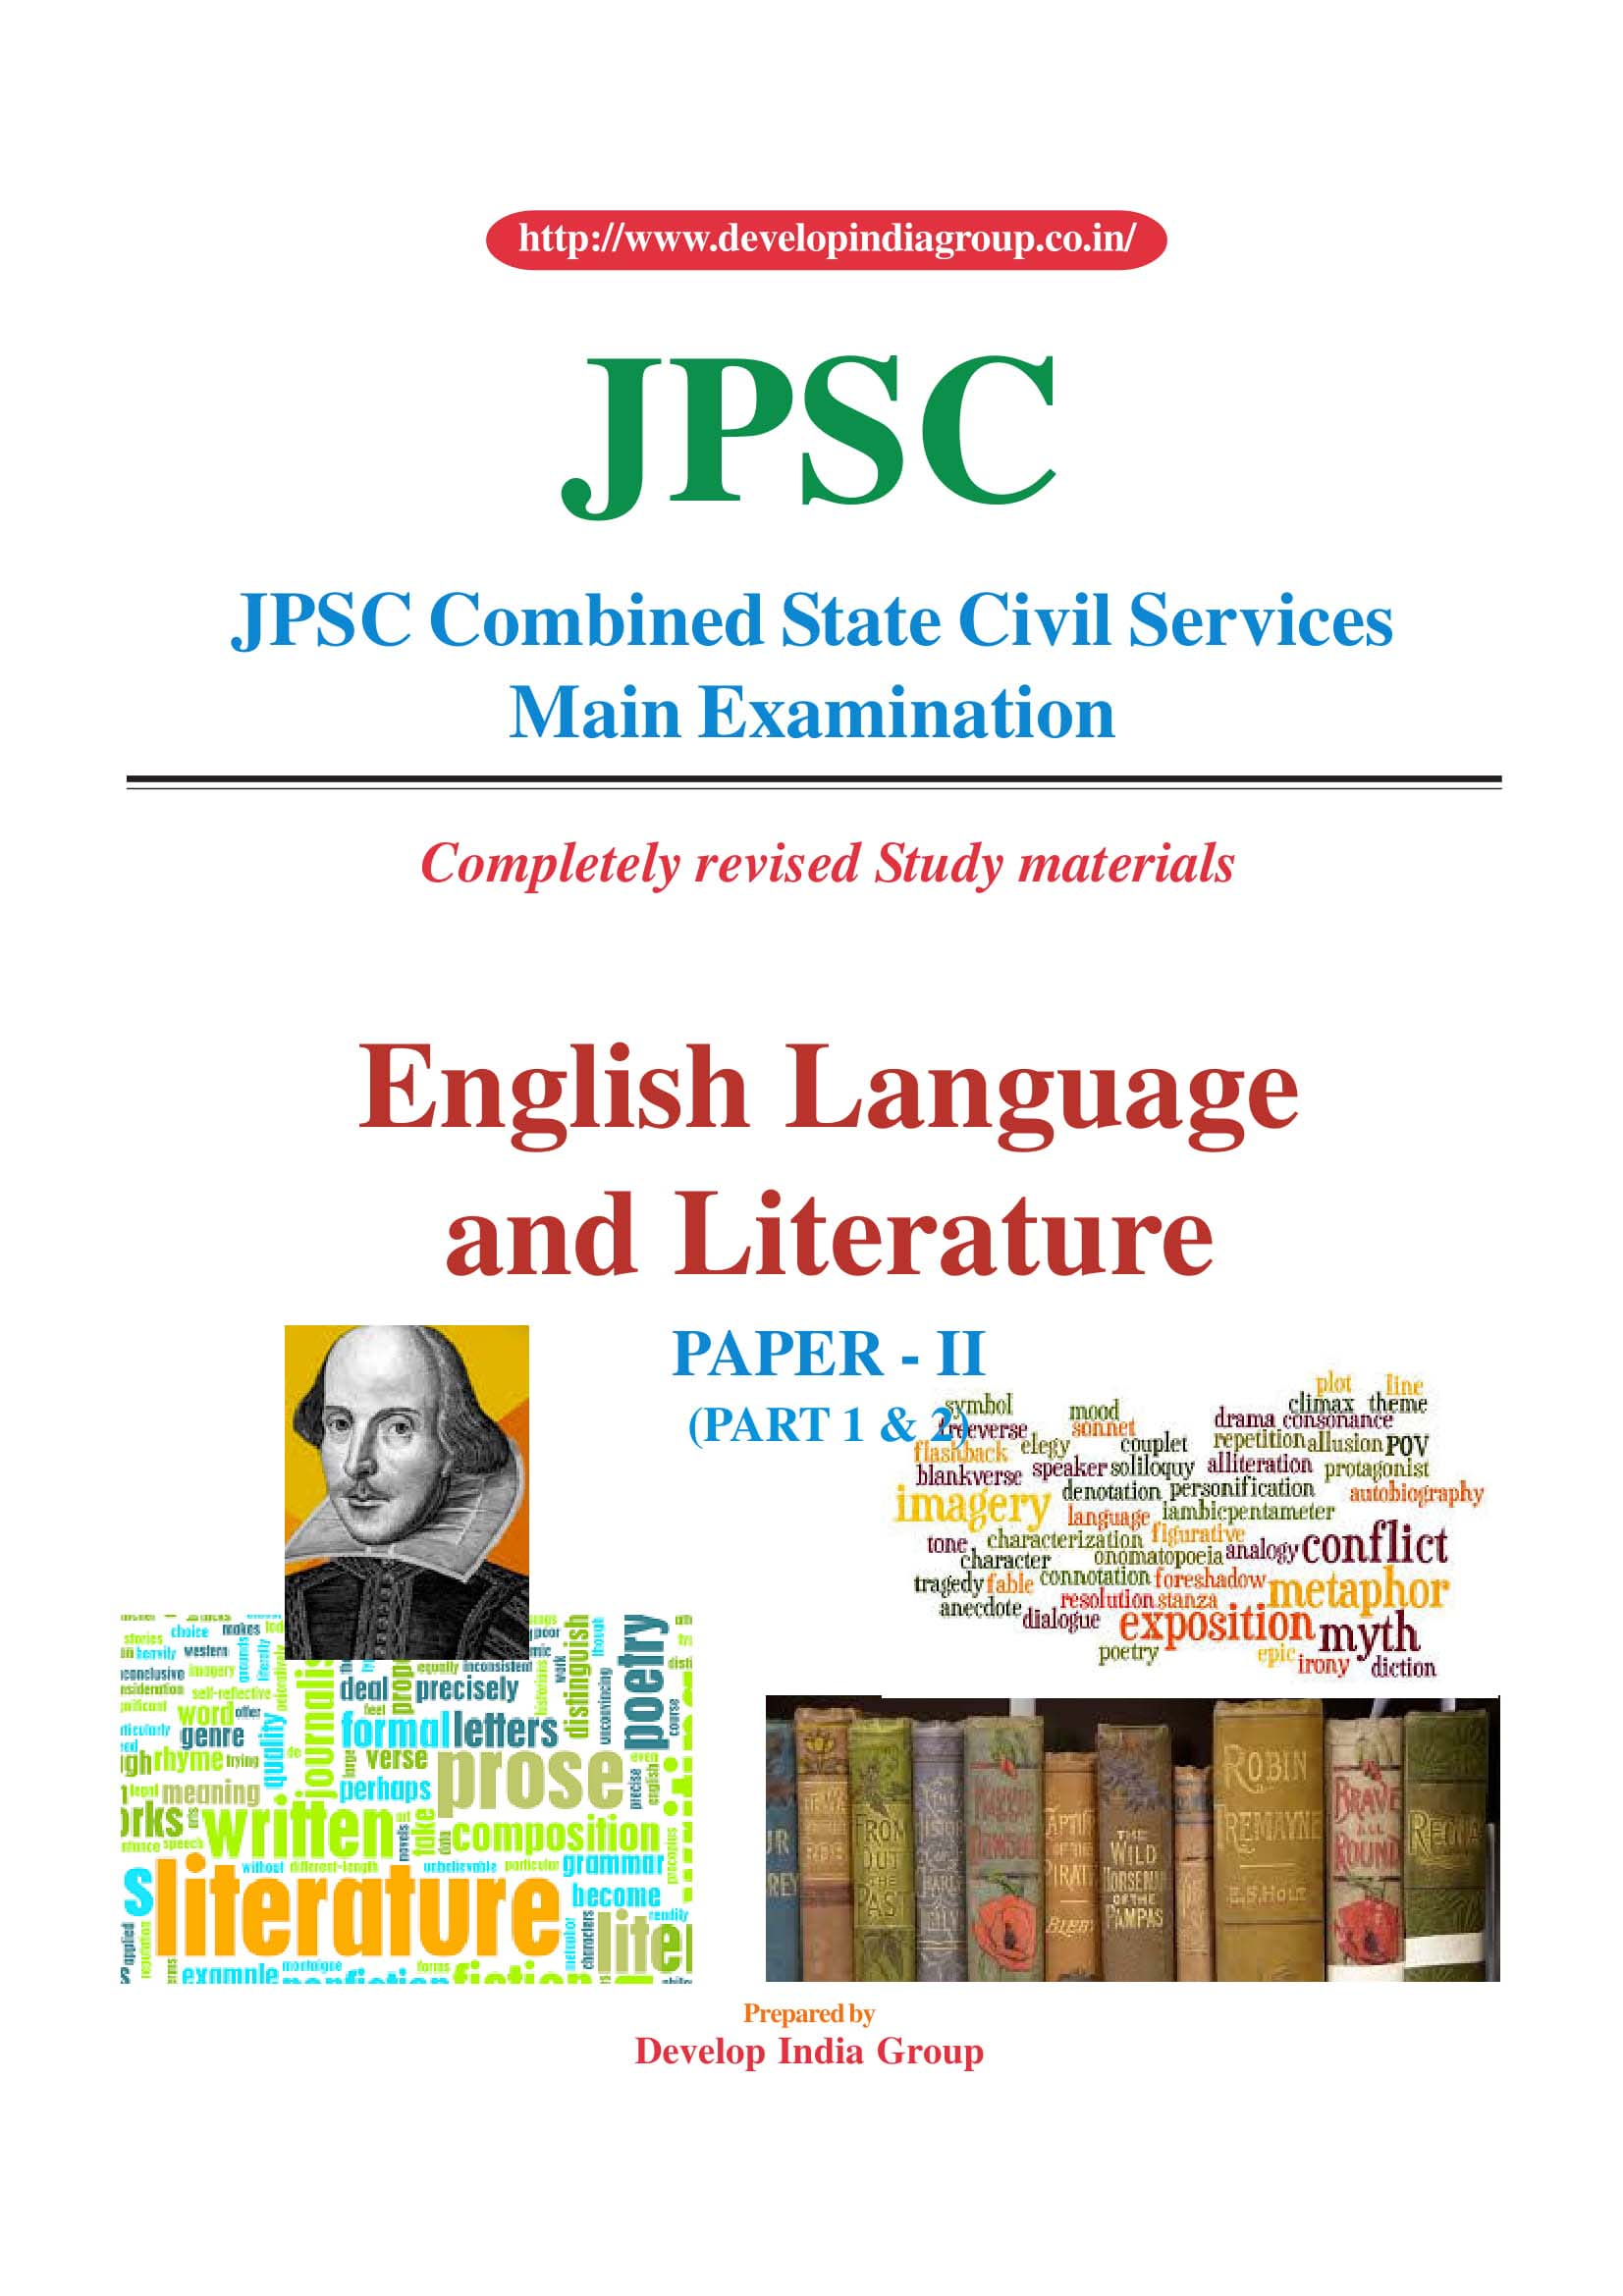 JPSC_Main_(revised)_Paper_2_English Literature